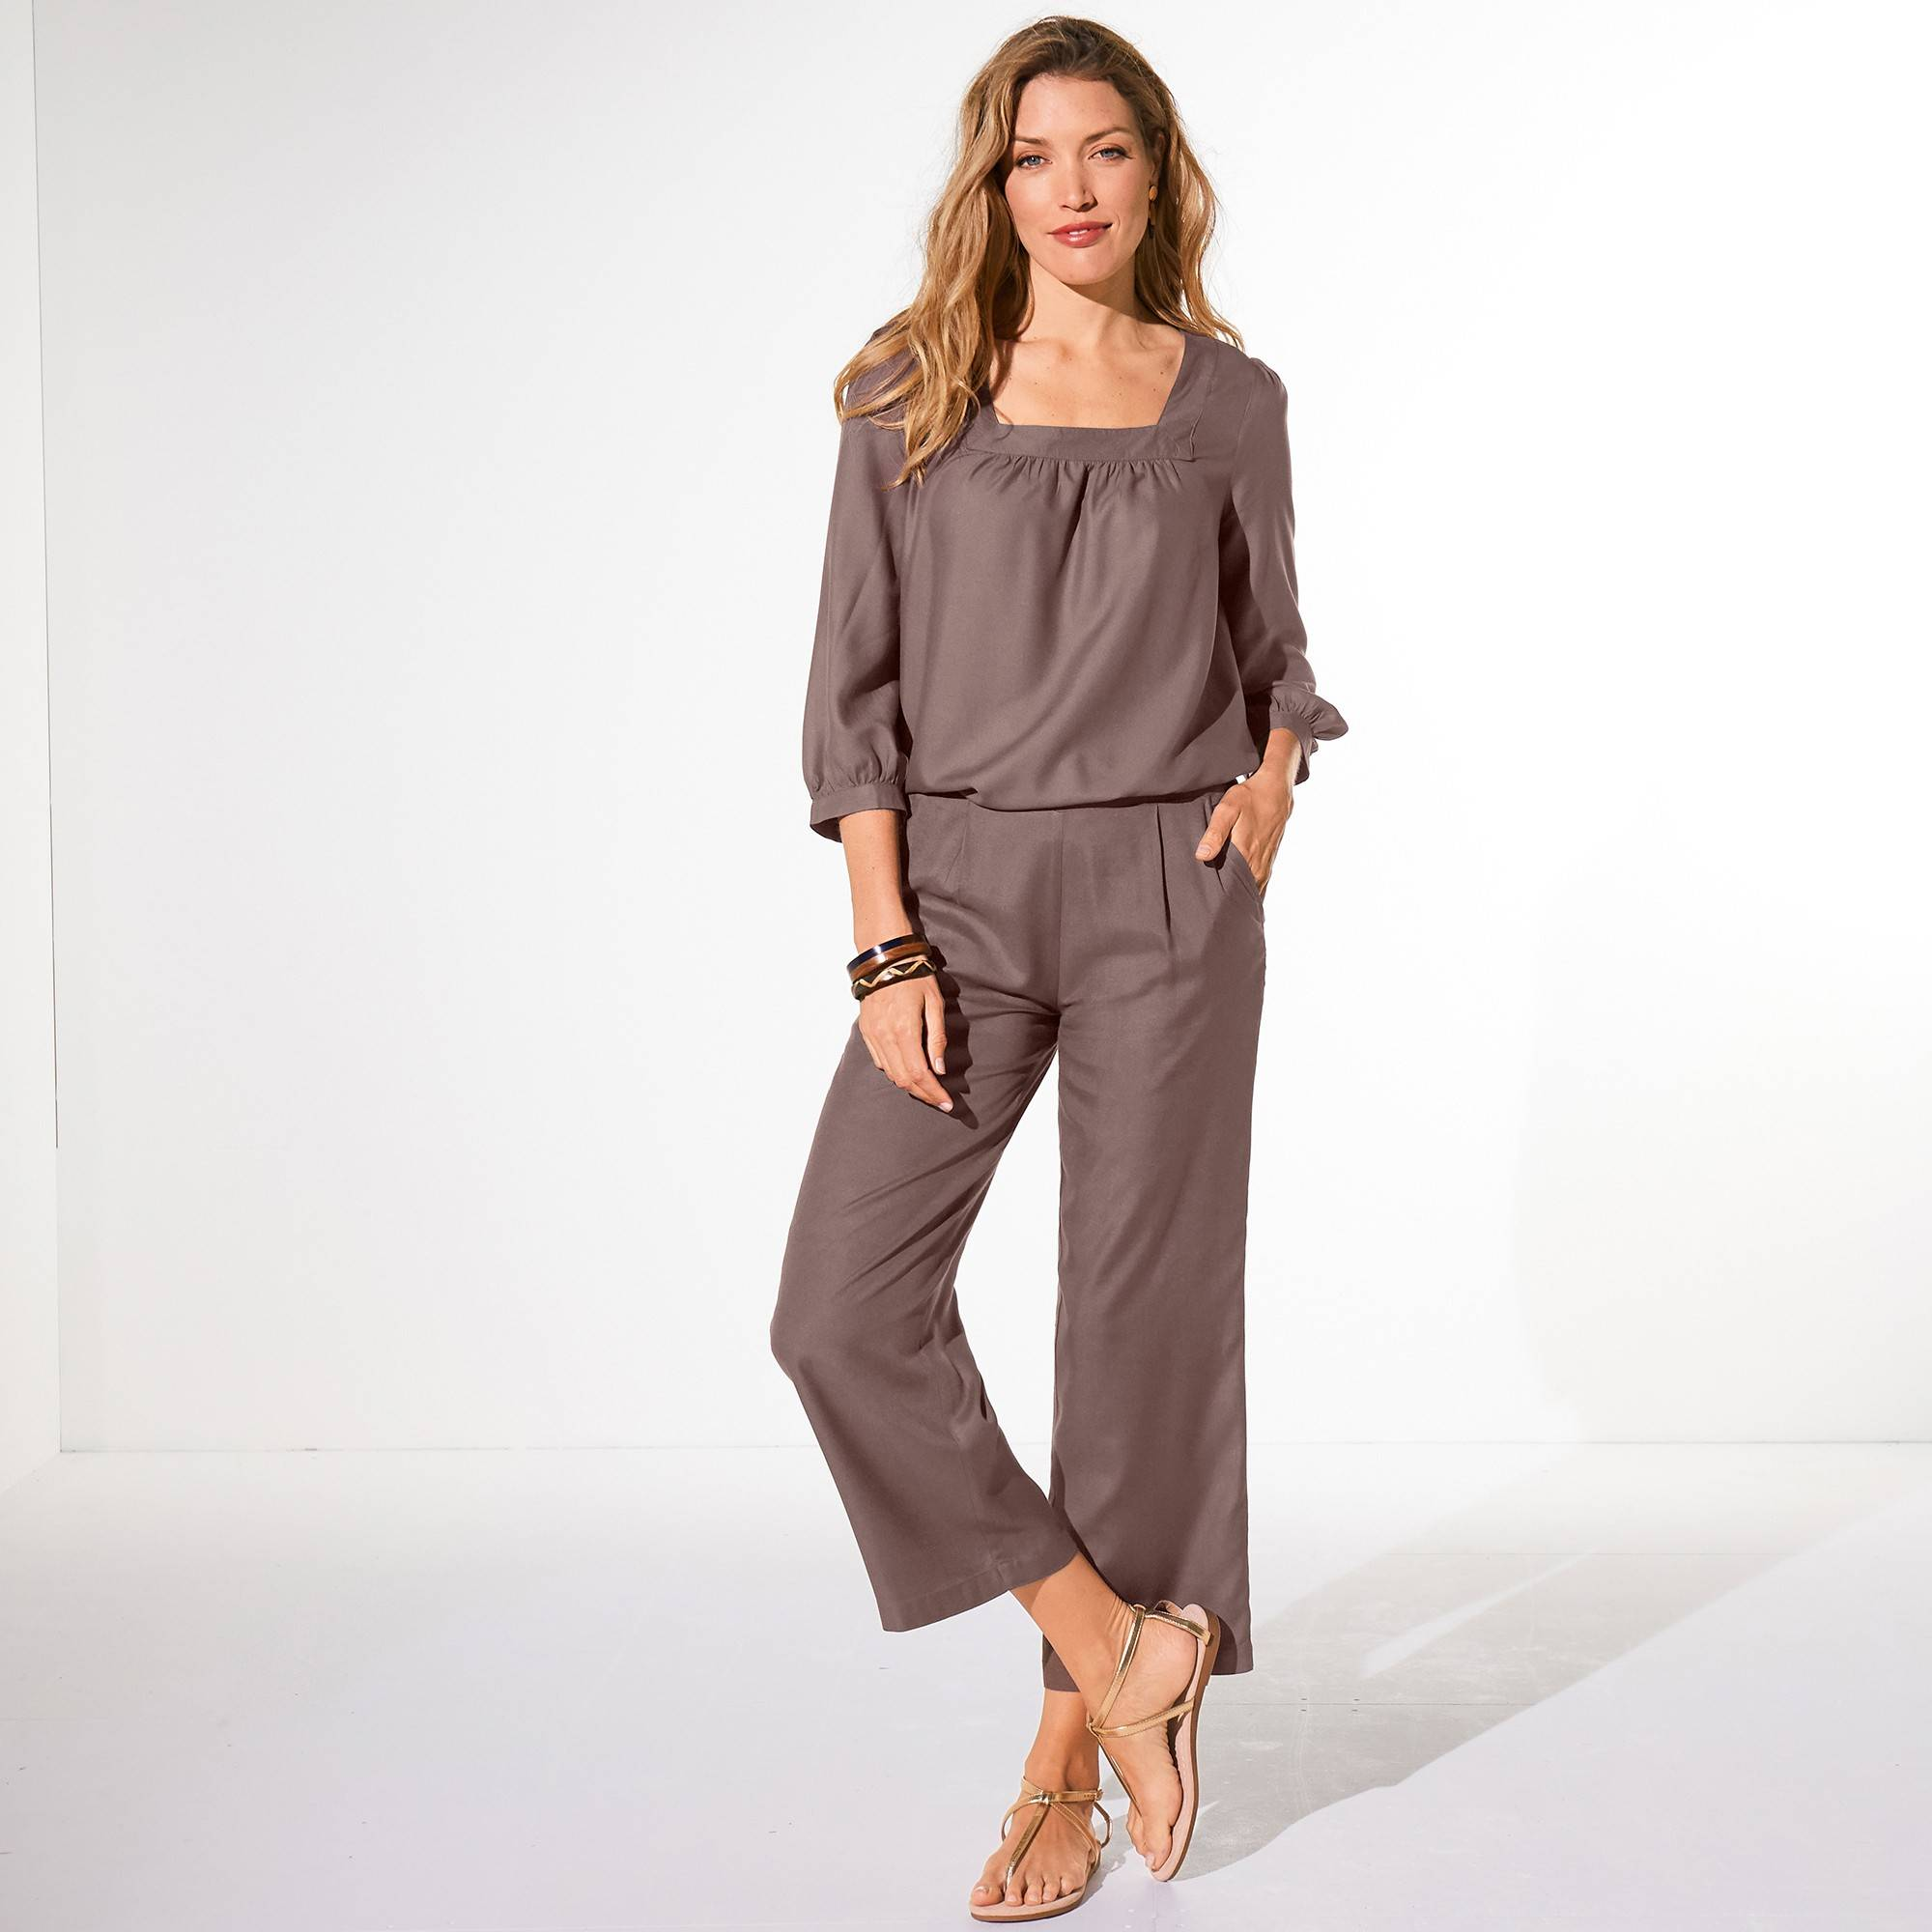 Blouse col carré unie - taupe - Taille : 44 - Blancheporte